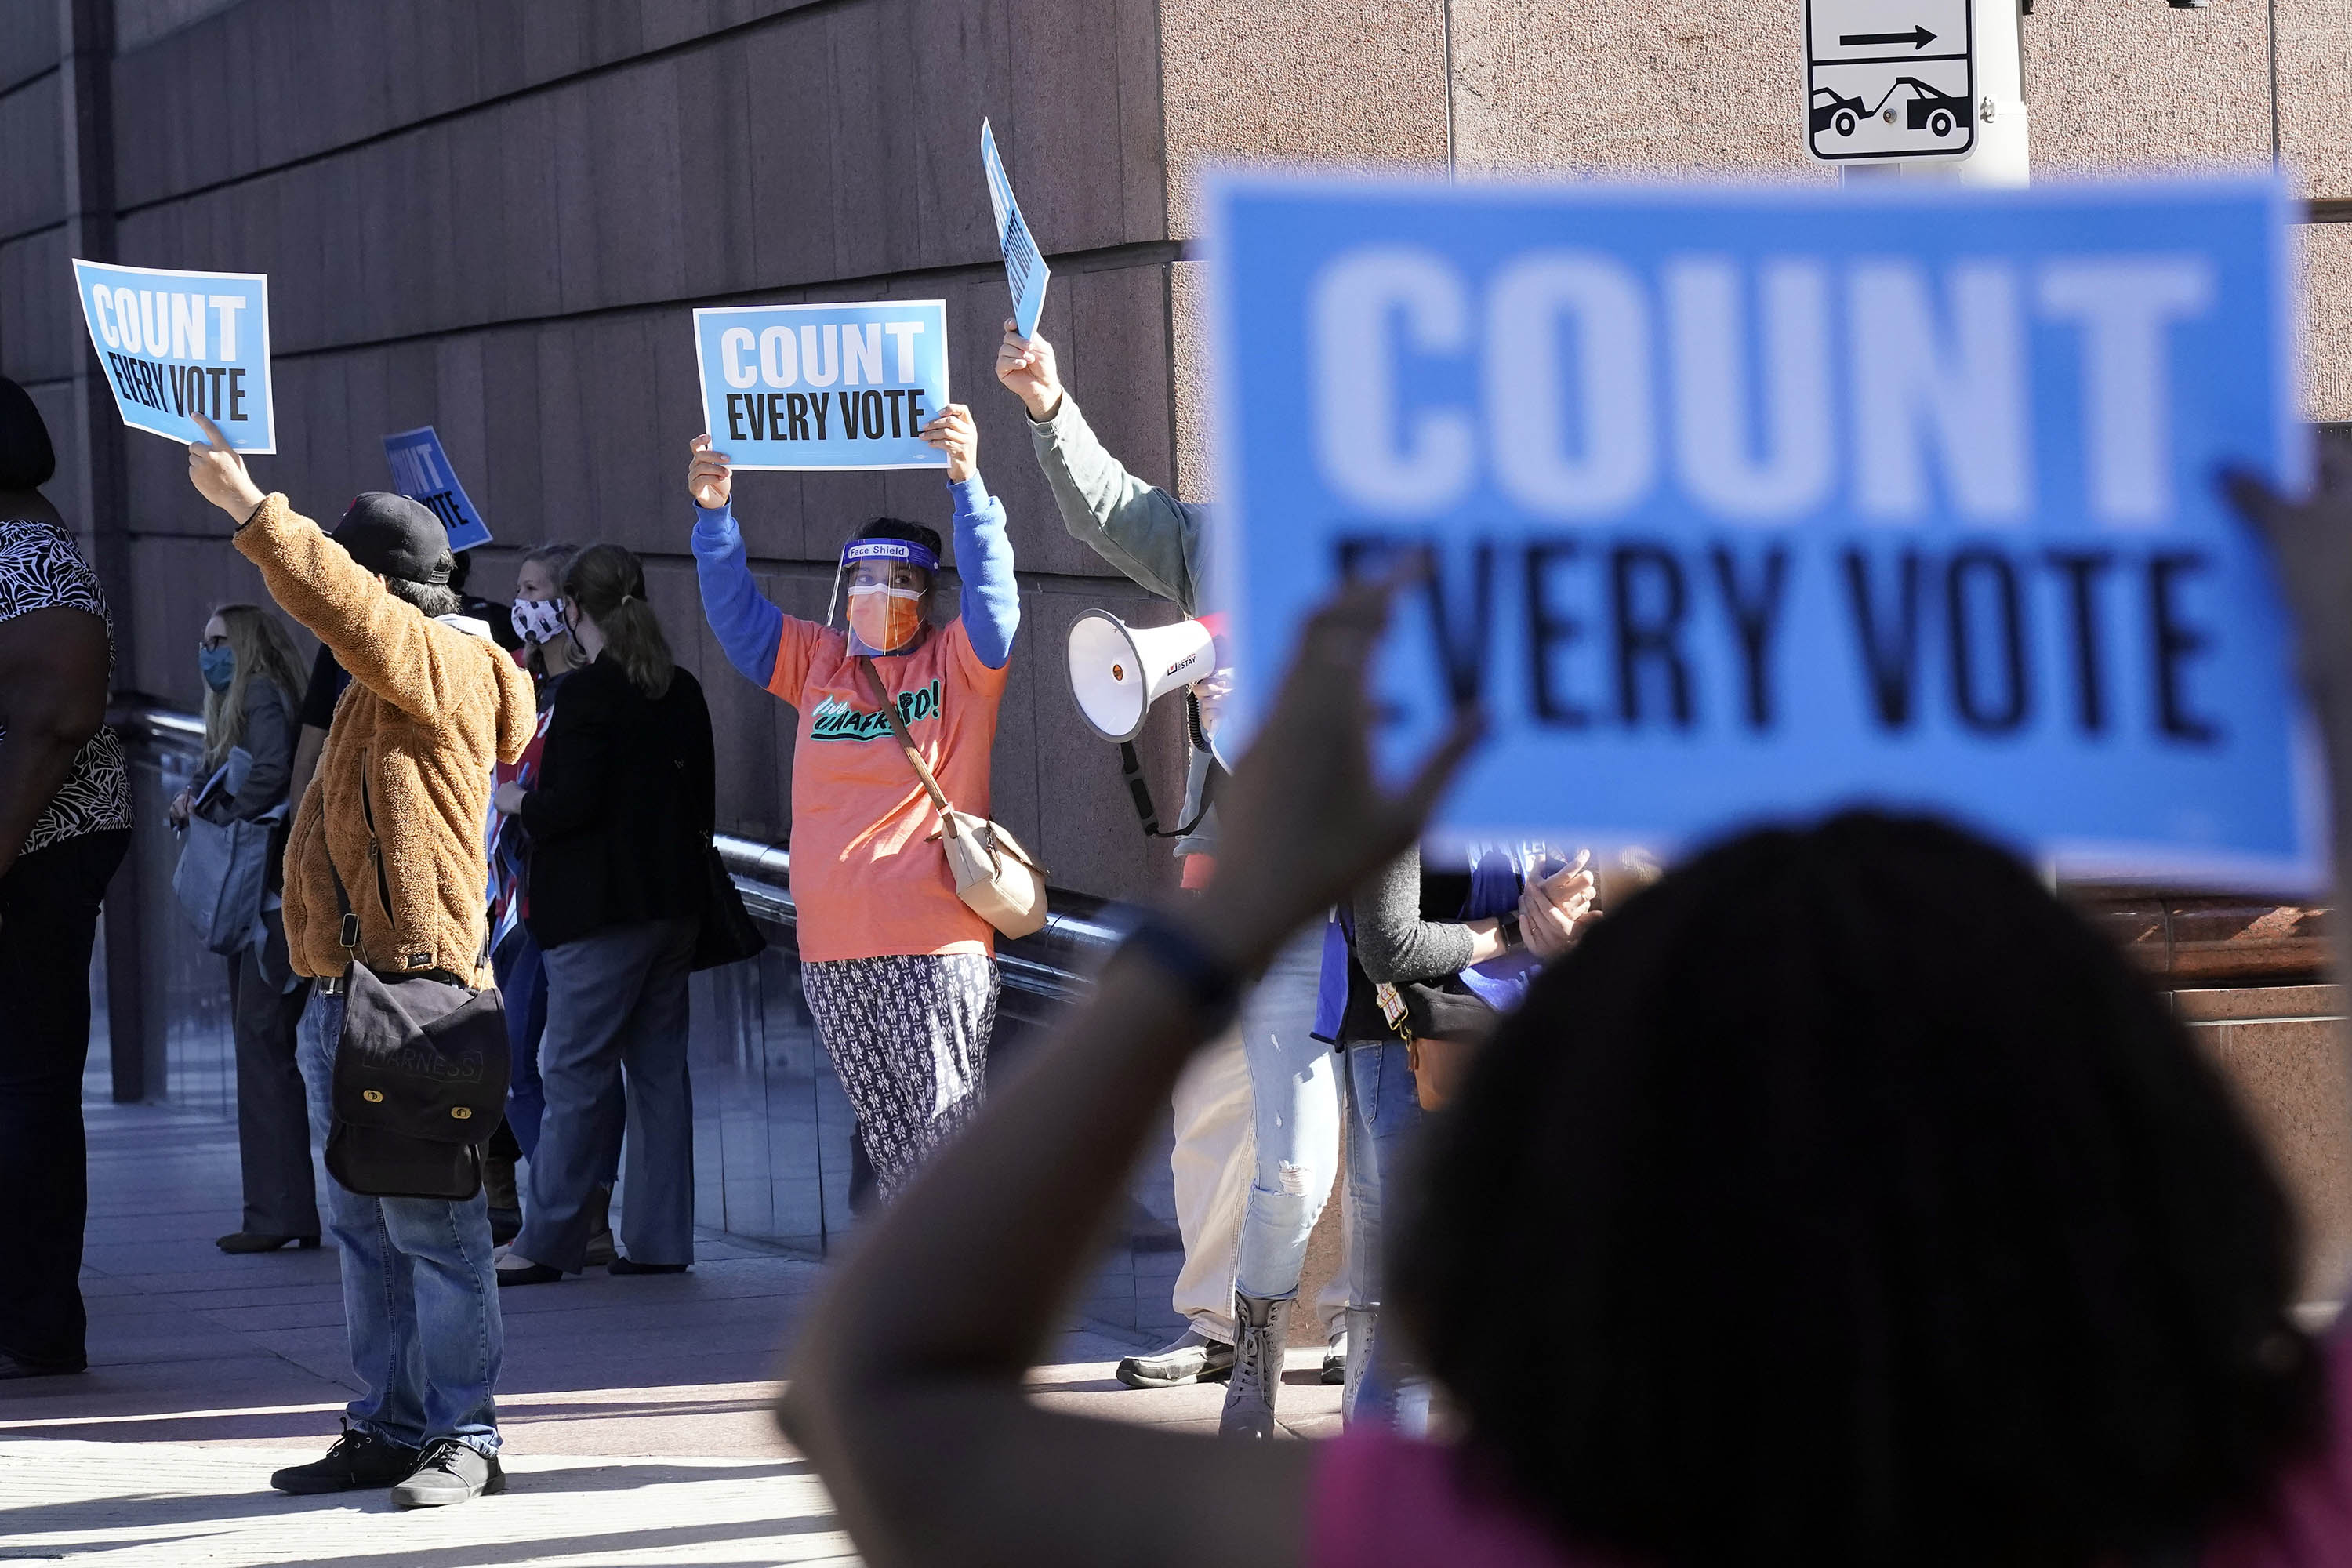 Demonstrators stand across the street from the federal courthouse in Houston, Texas, on Monday, before a hearing in federal court involving drive-thru ballots cast in Harris County.